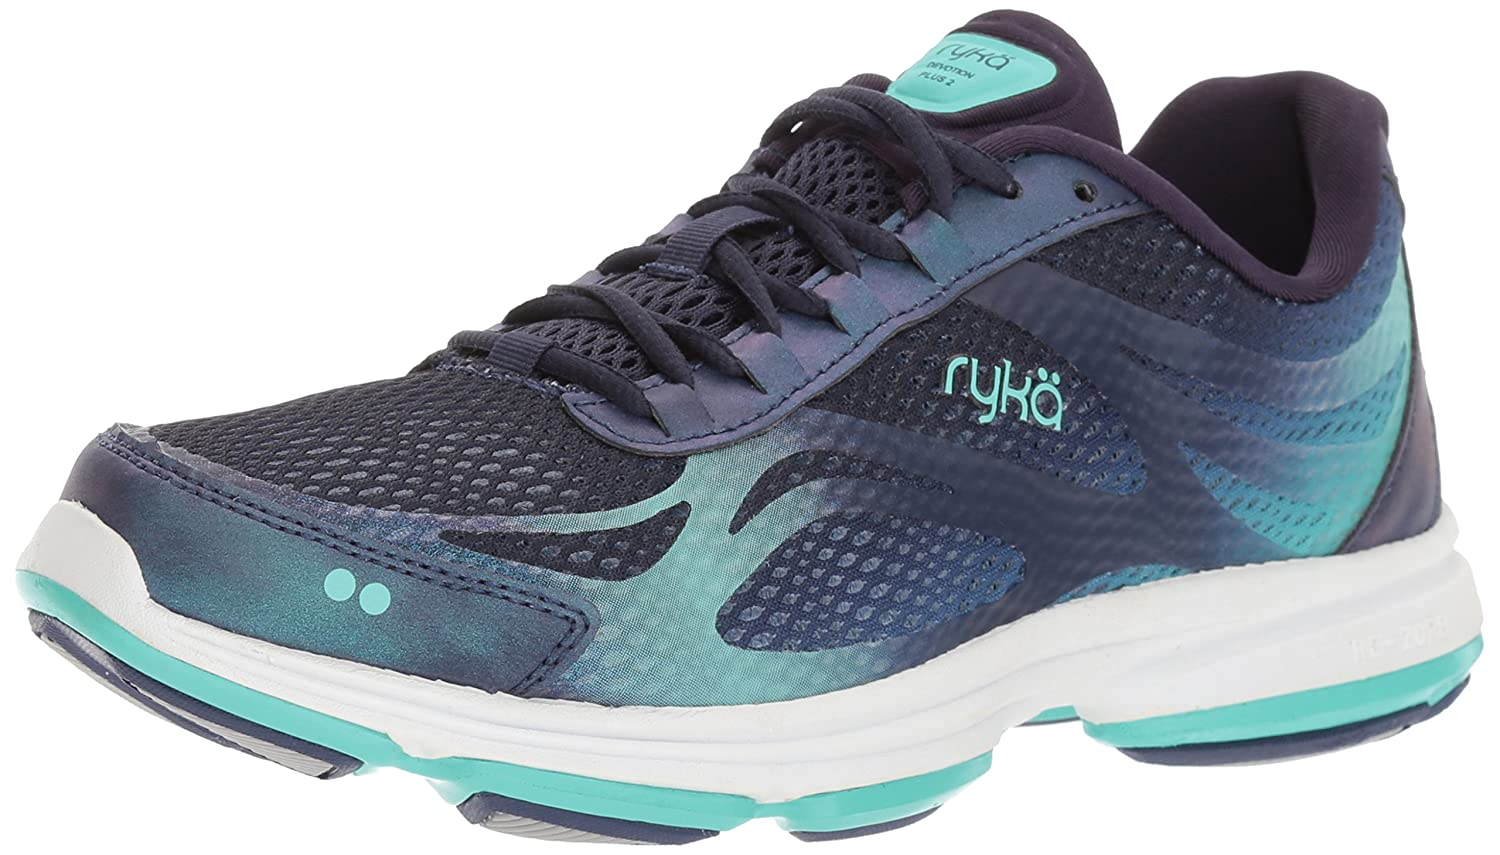 Ryka Women's Devo Plus 2 Walking Shoe B01N2ANT51 11 B(M) US|Navy/Teal